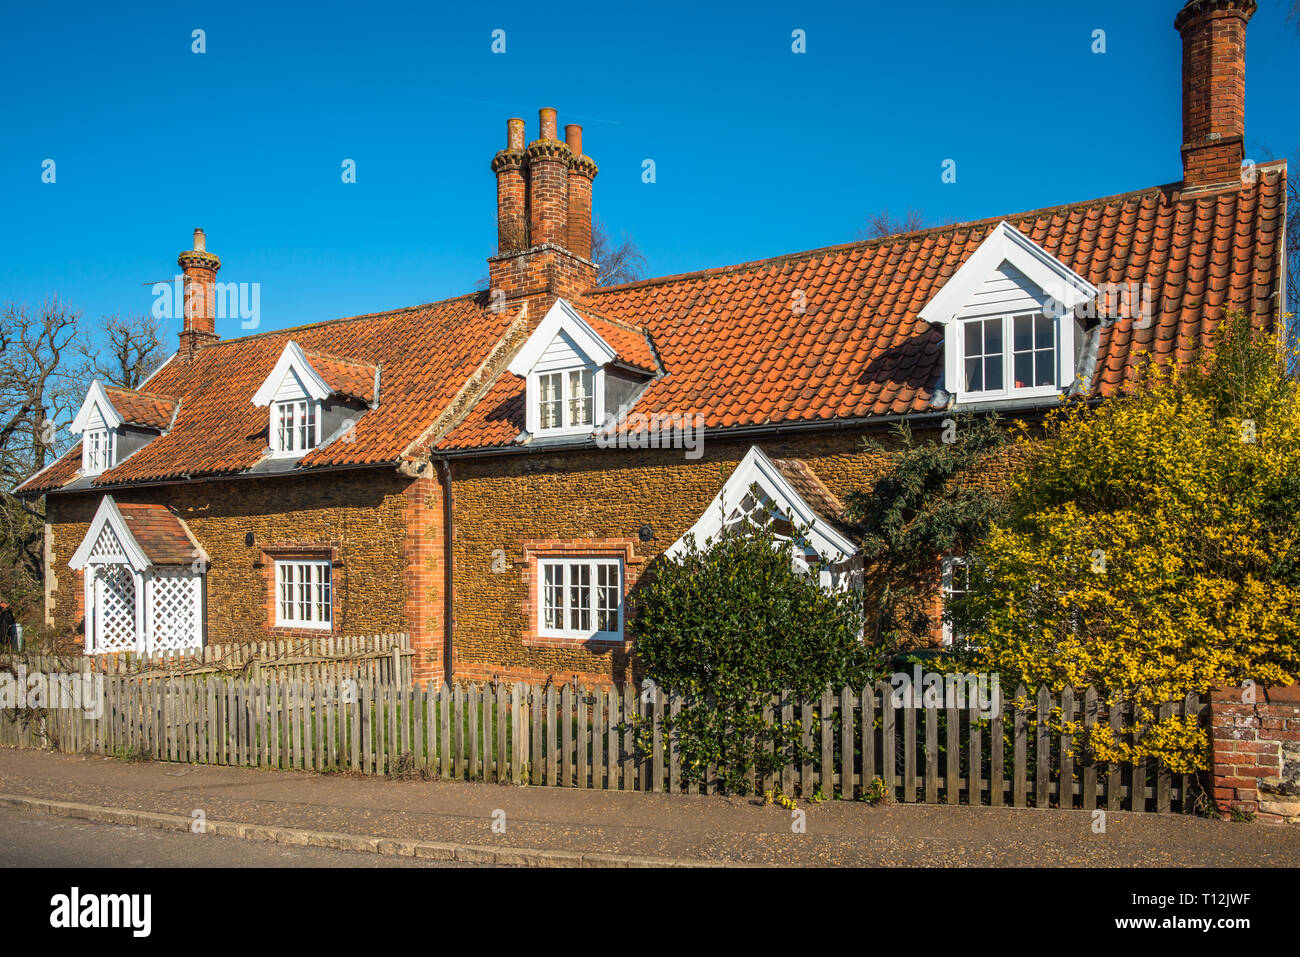 Characterful cottages in the village of Castle Rising in Norfolk, East Anglia, England, UK. - Stock Image